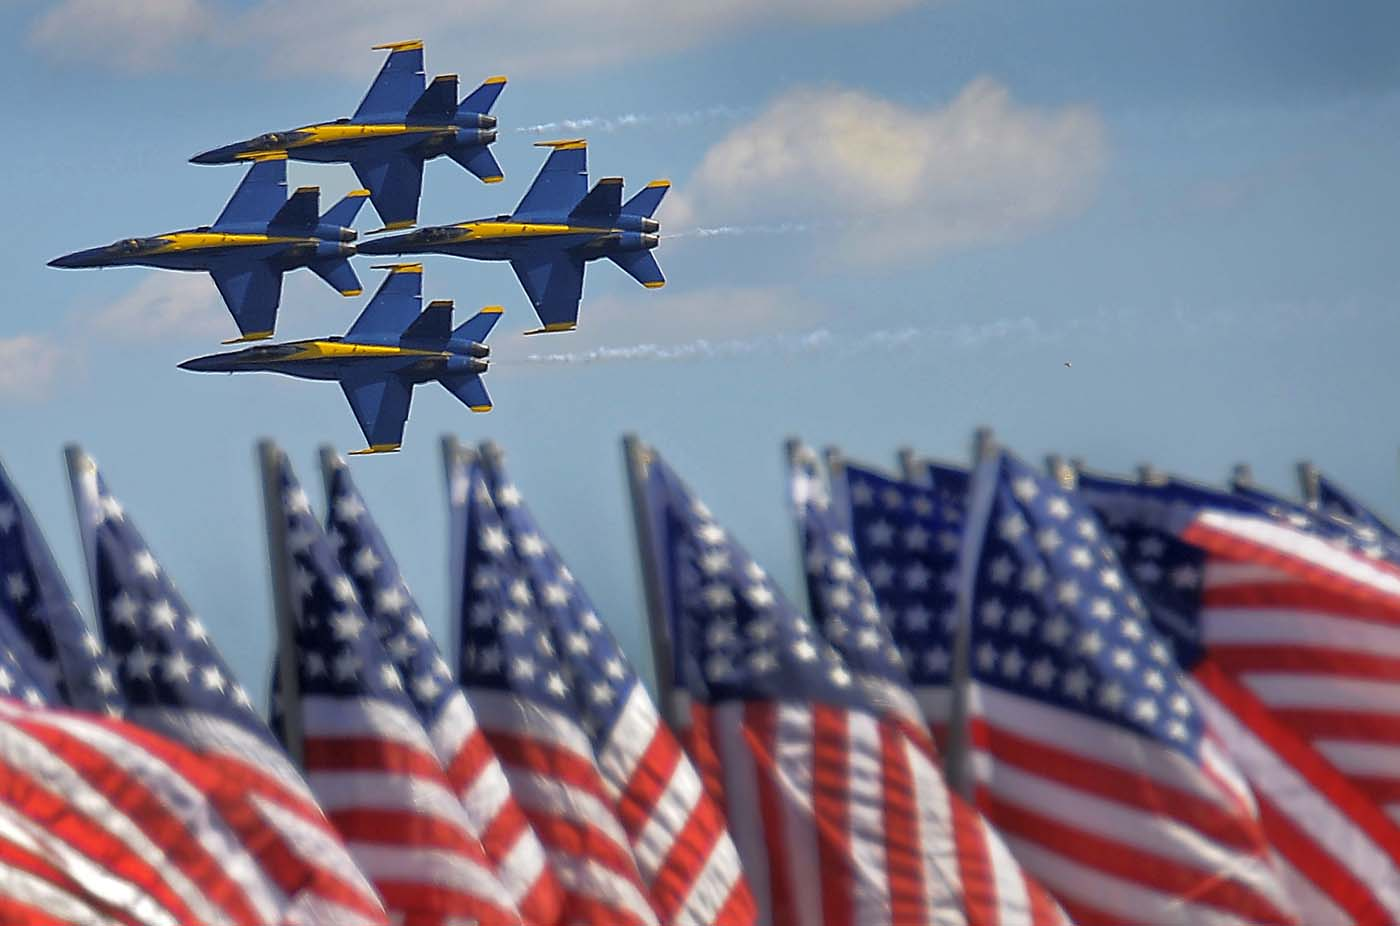 The Blue Angels - Boeing F/A-18 Super Hornet planes - fly in formation past a line of U.S. flags, participating in the air show during the weekend-long Star Spangled Sailabration at Fort McHenry Saturday, Jun 16, 2012. (Karl Merton Ferron/Baltimore Sun)